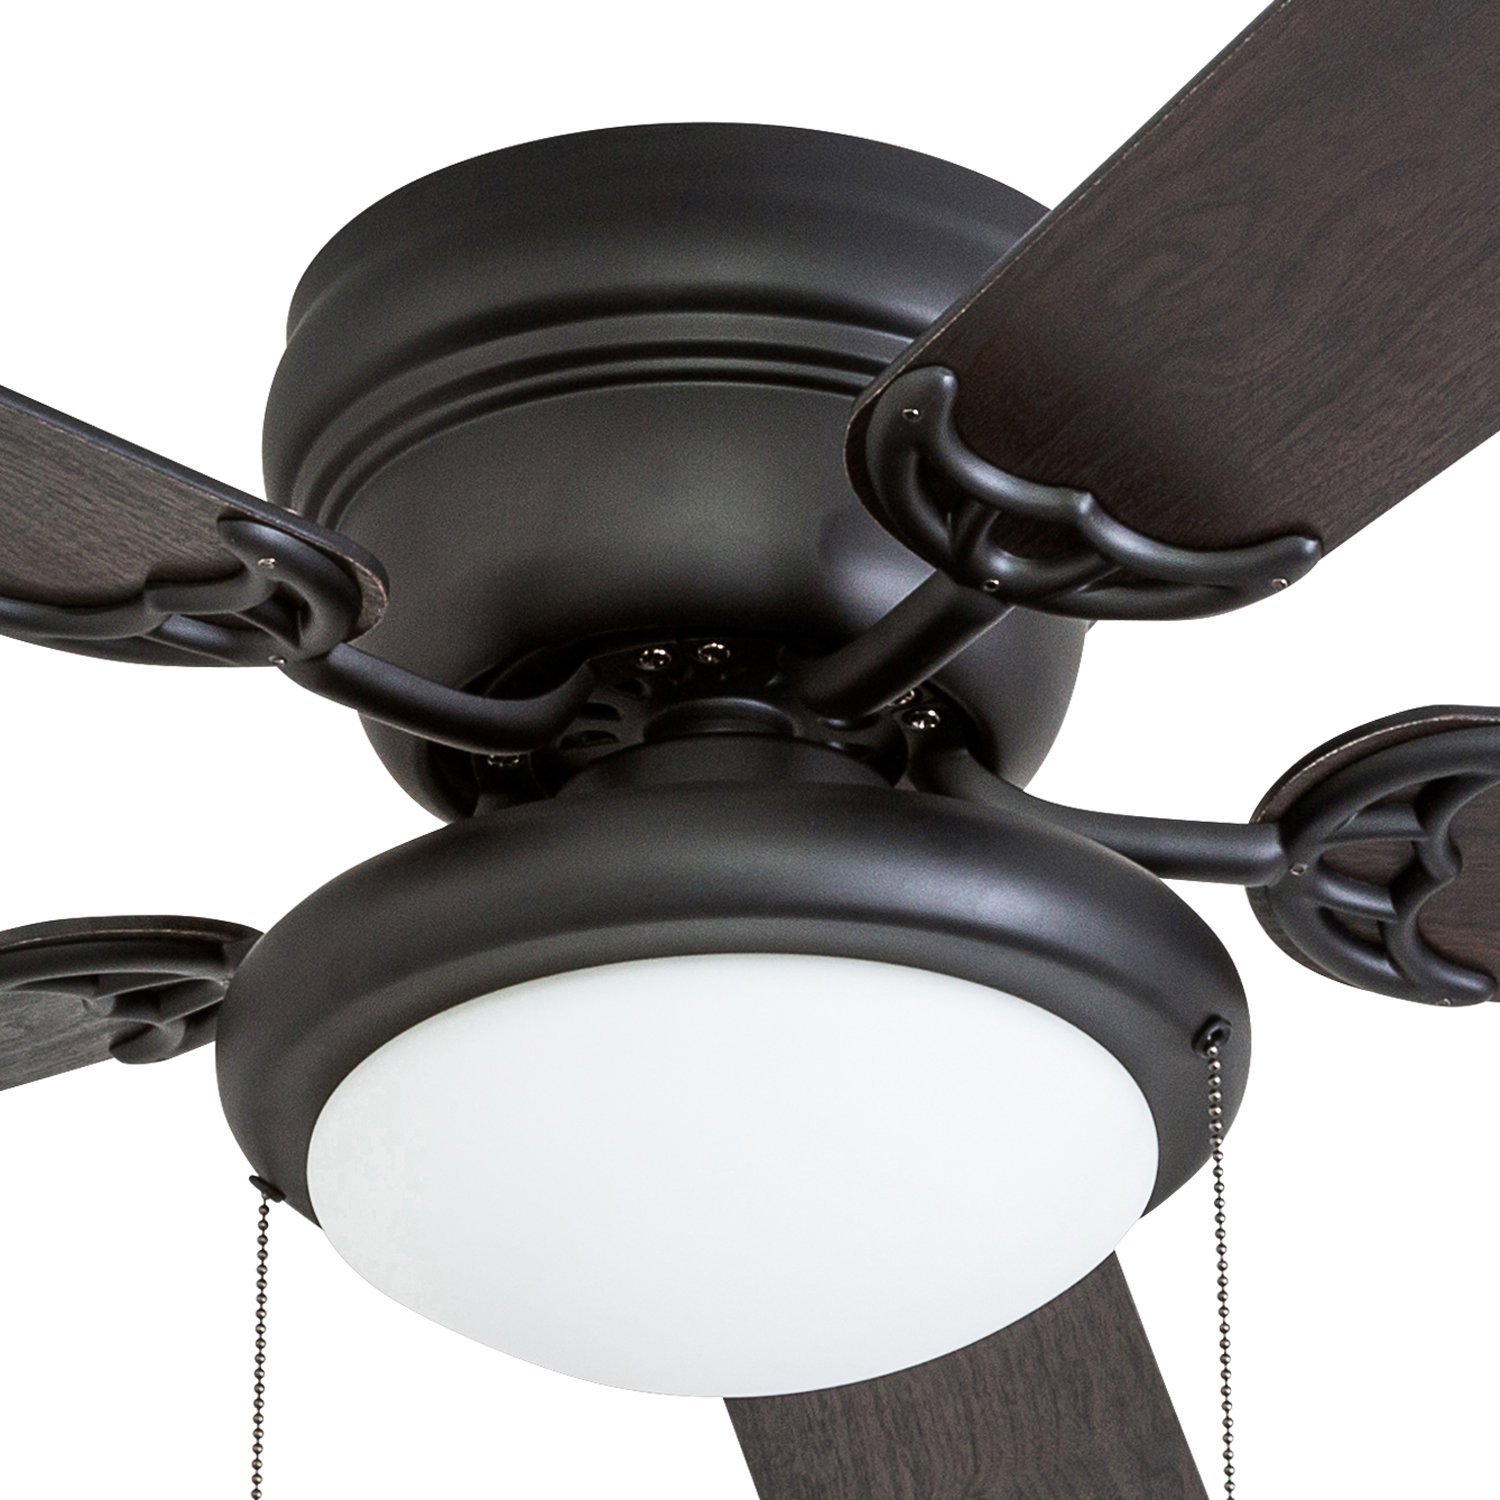 Portage Bay 50251 Hugger 52'' Matte Black West Hill Ceiling Fan with Bowl Light Kit by Portage Bay (Image #3)